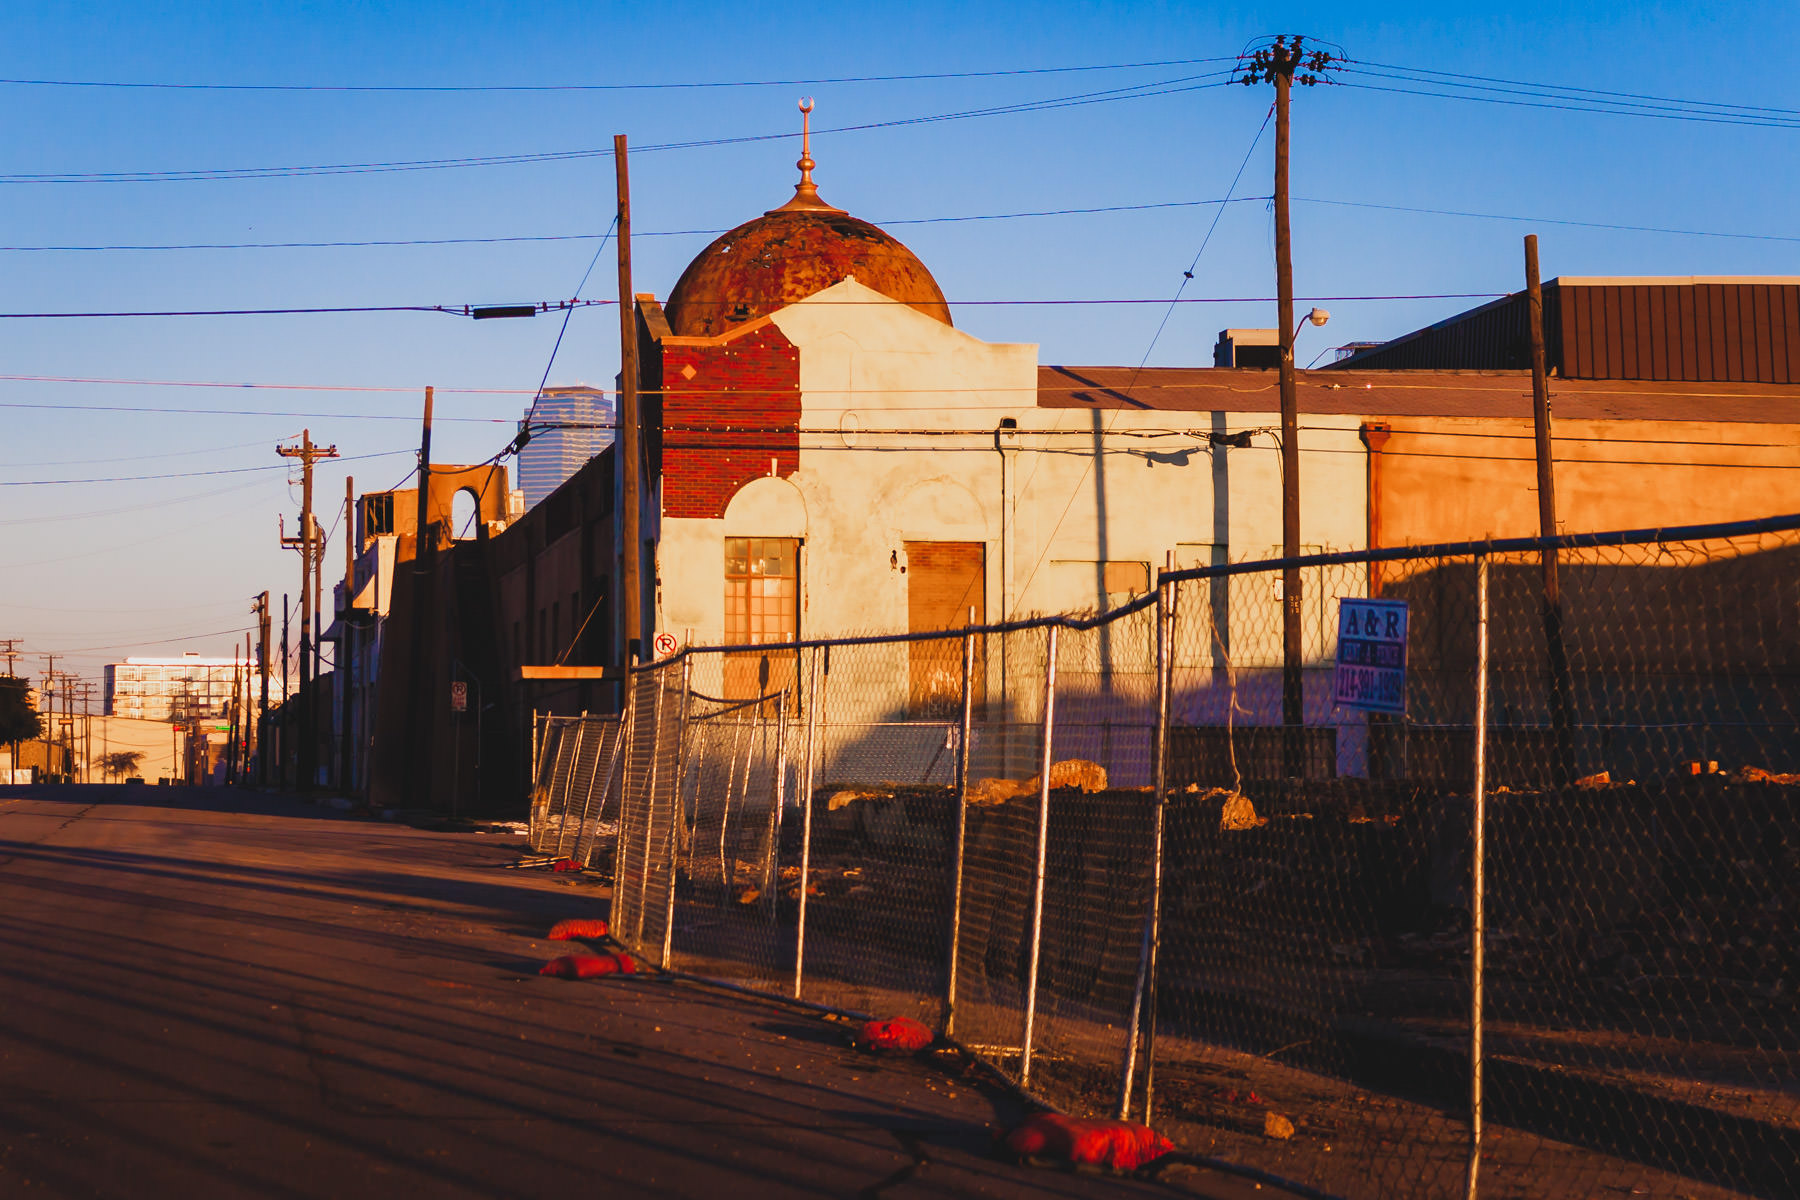 Little Baghdad was a four block area of The Cedars neighborhood south of Downtown Dallas that was made to look like part of an Iraqi village for the filming of the NBC made-for-TV movie Saving Jessica Lynch.